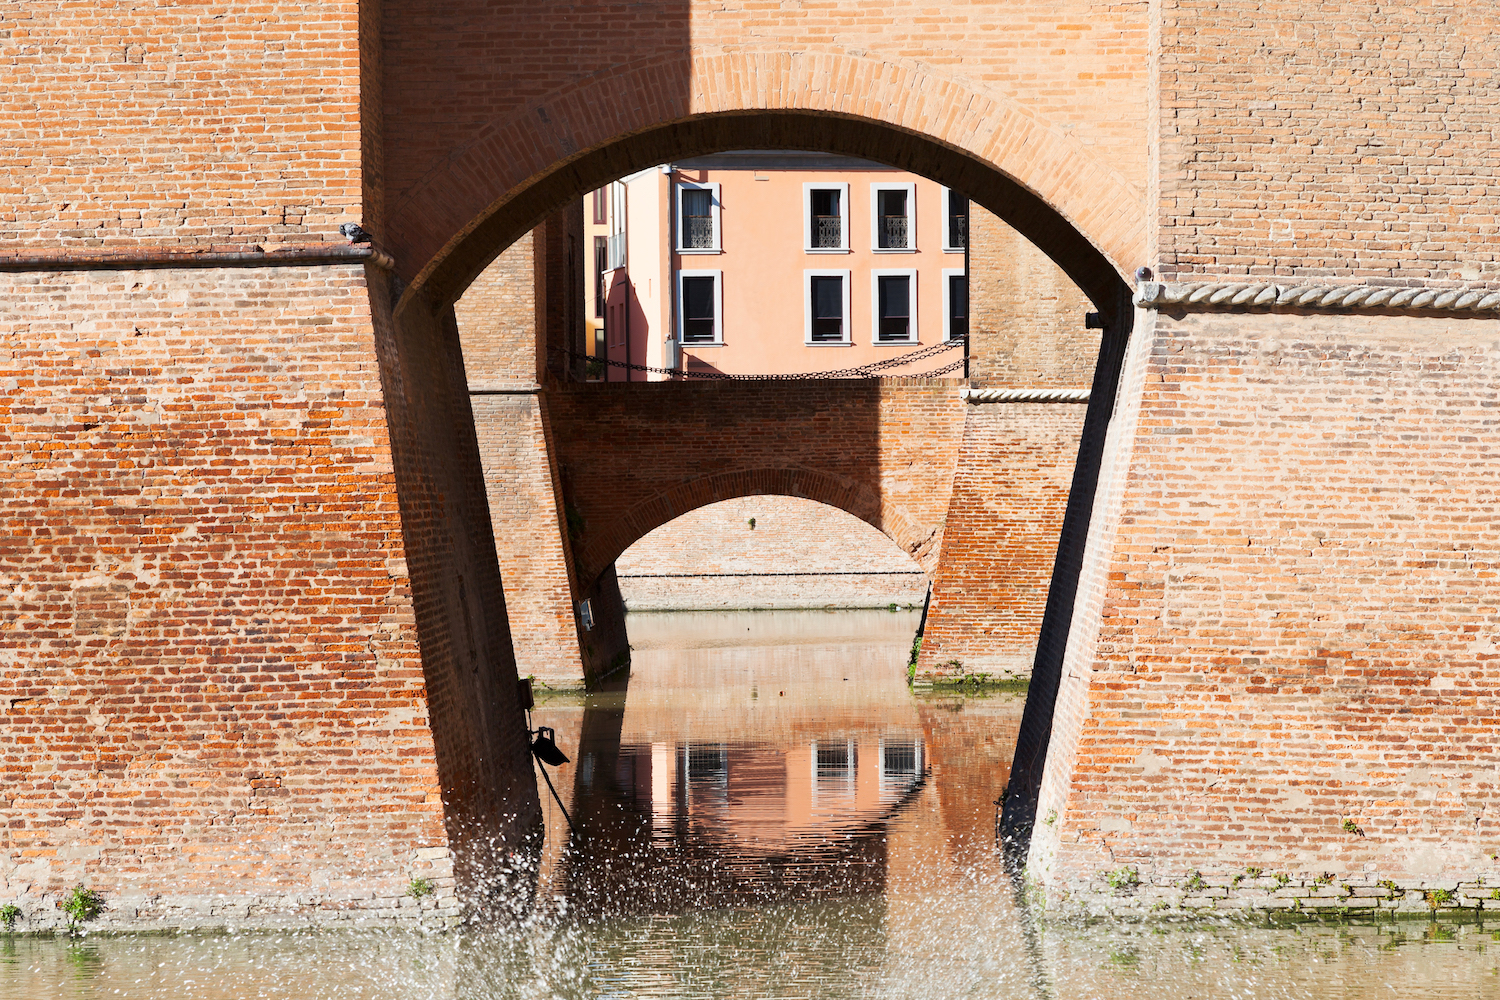 moat and bridges of Castle Estense in Ferrara, Italy